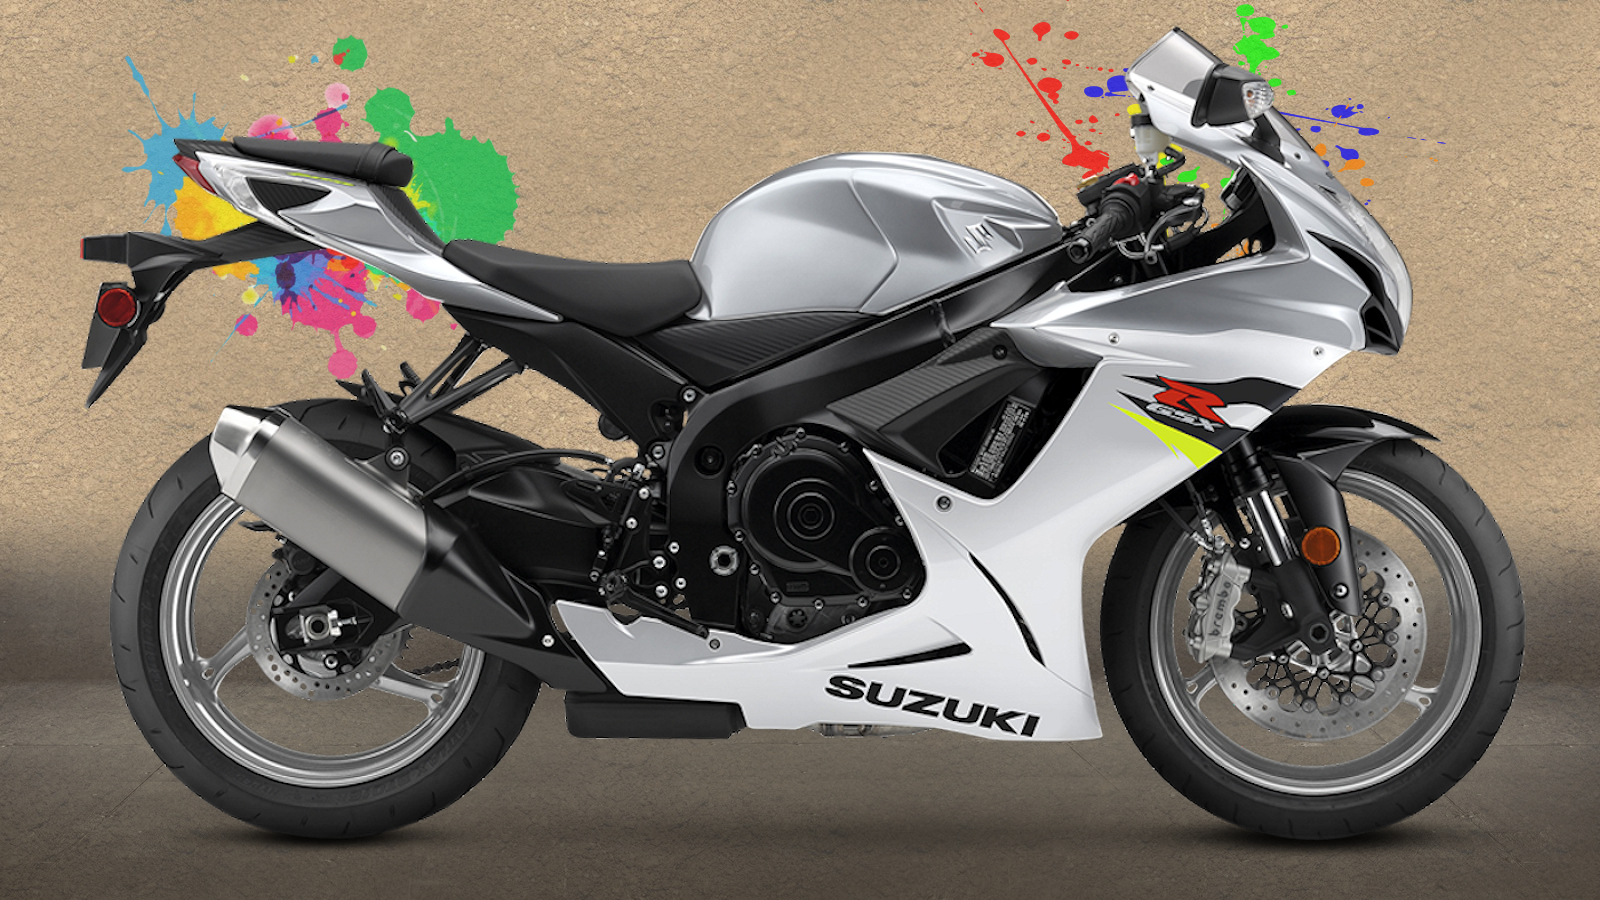 2015 - 2019 Suzuki GSX-R600 | Top Speed